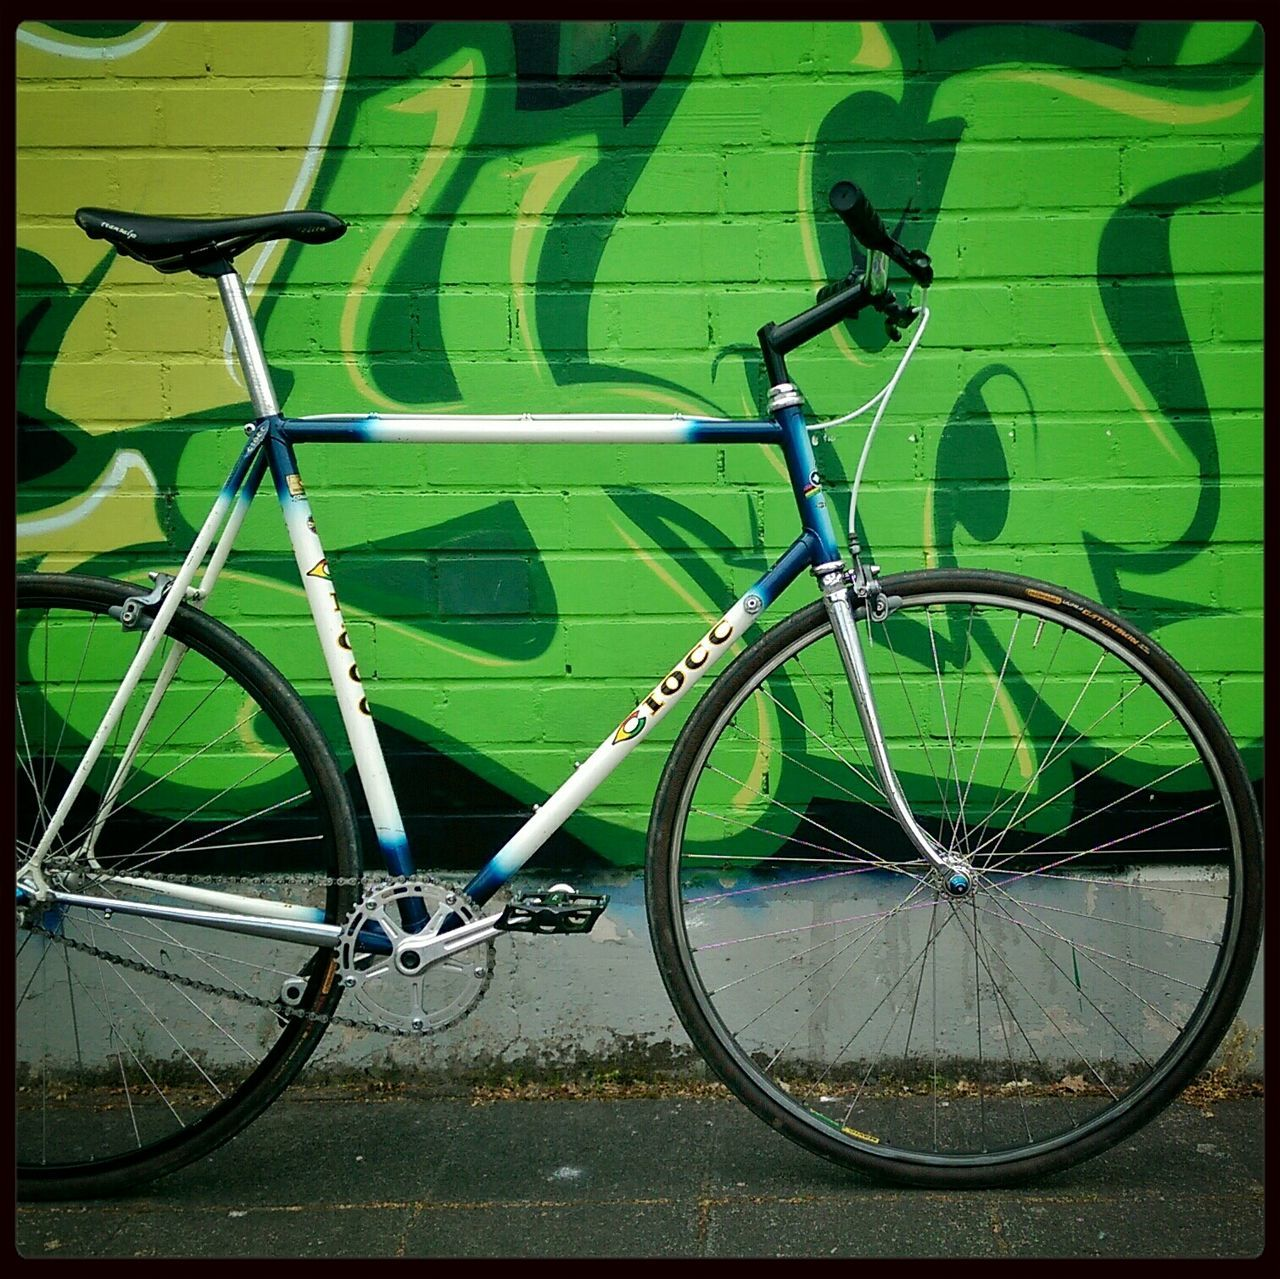 bicycle, land vehicle, transportation, mode of transport, day, outdoors, green color, stationary, no people, bicycle rack